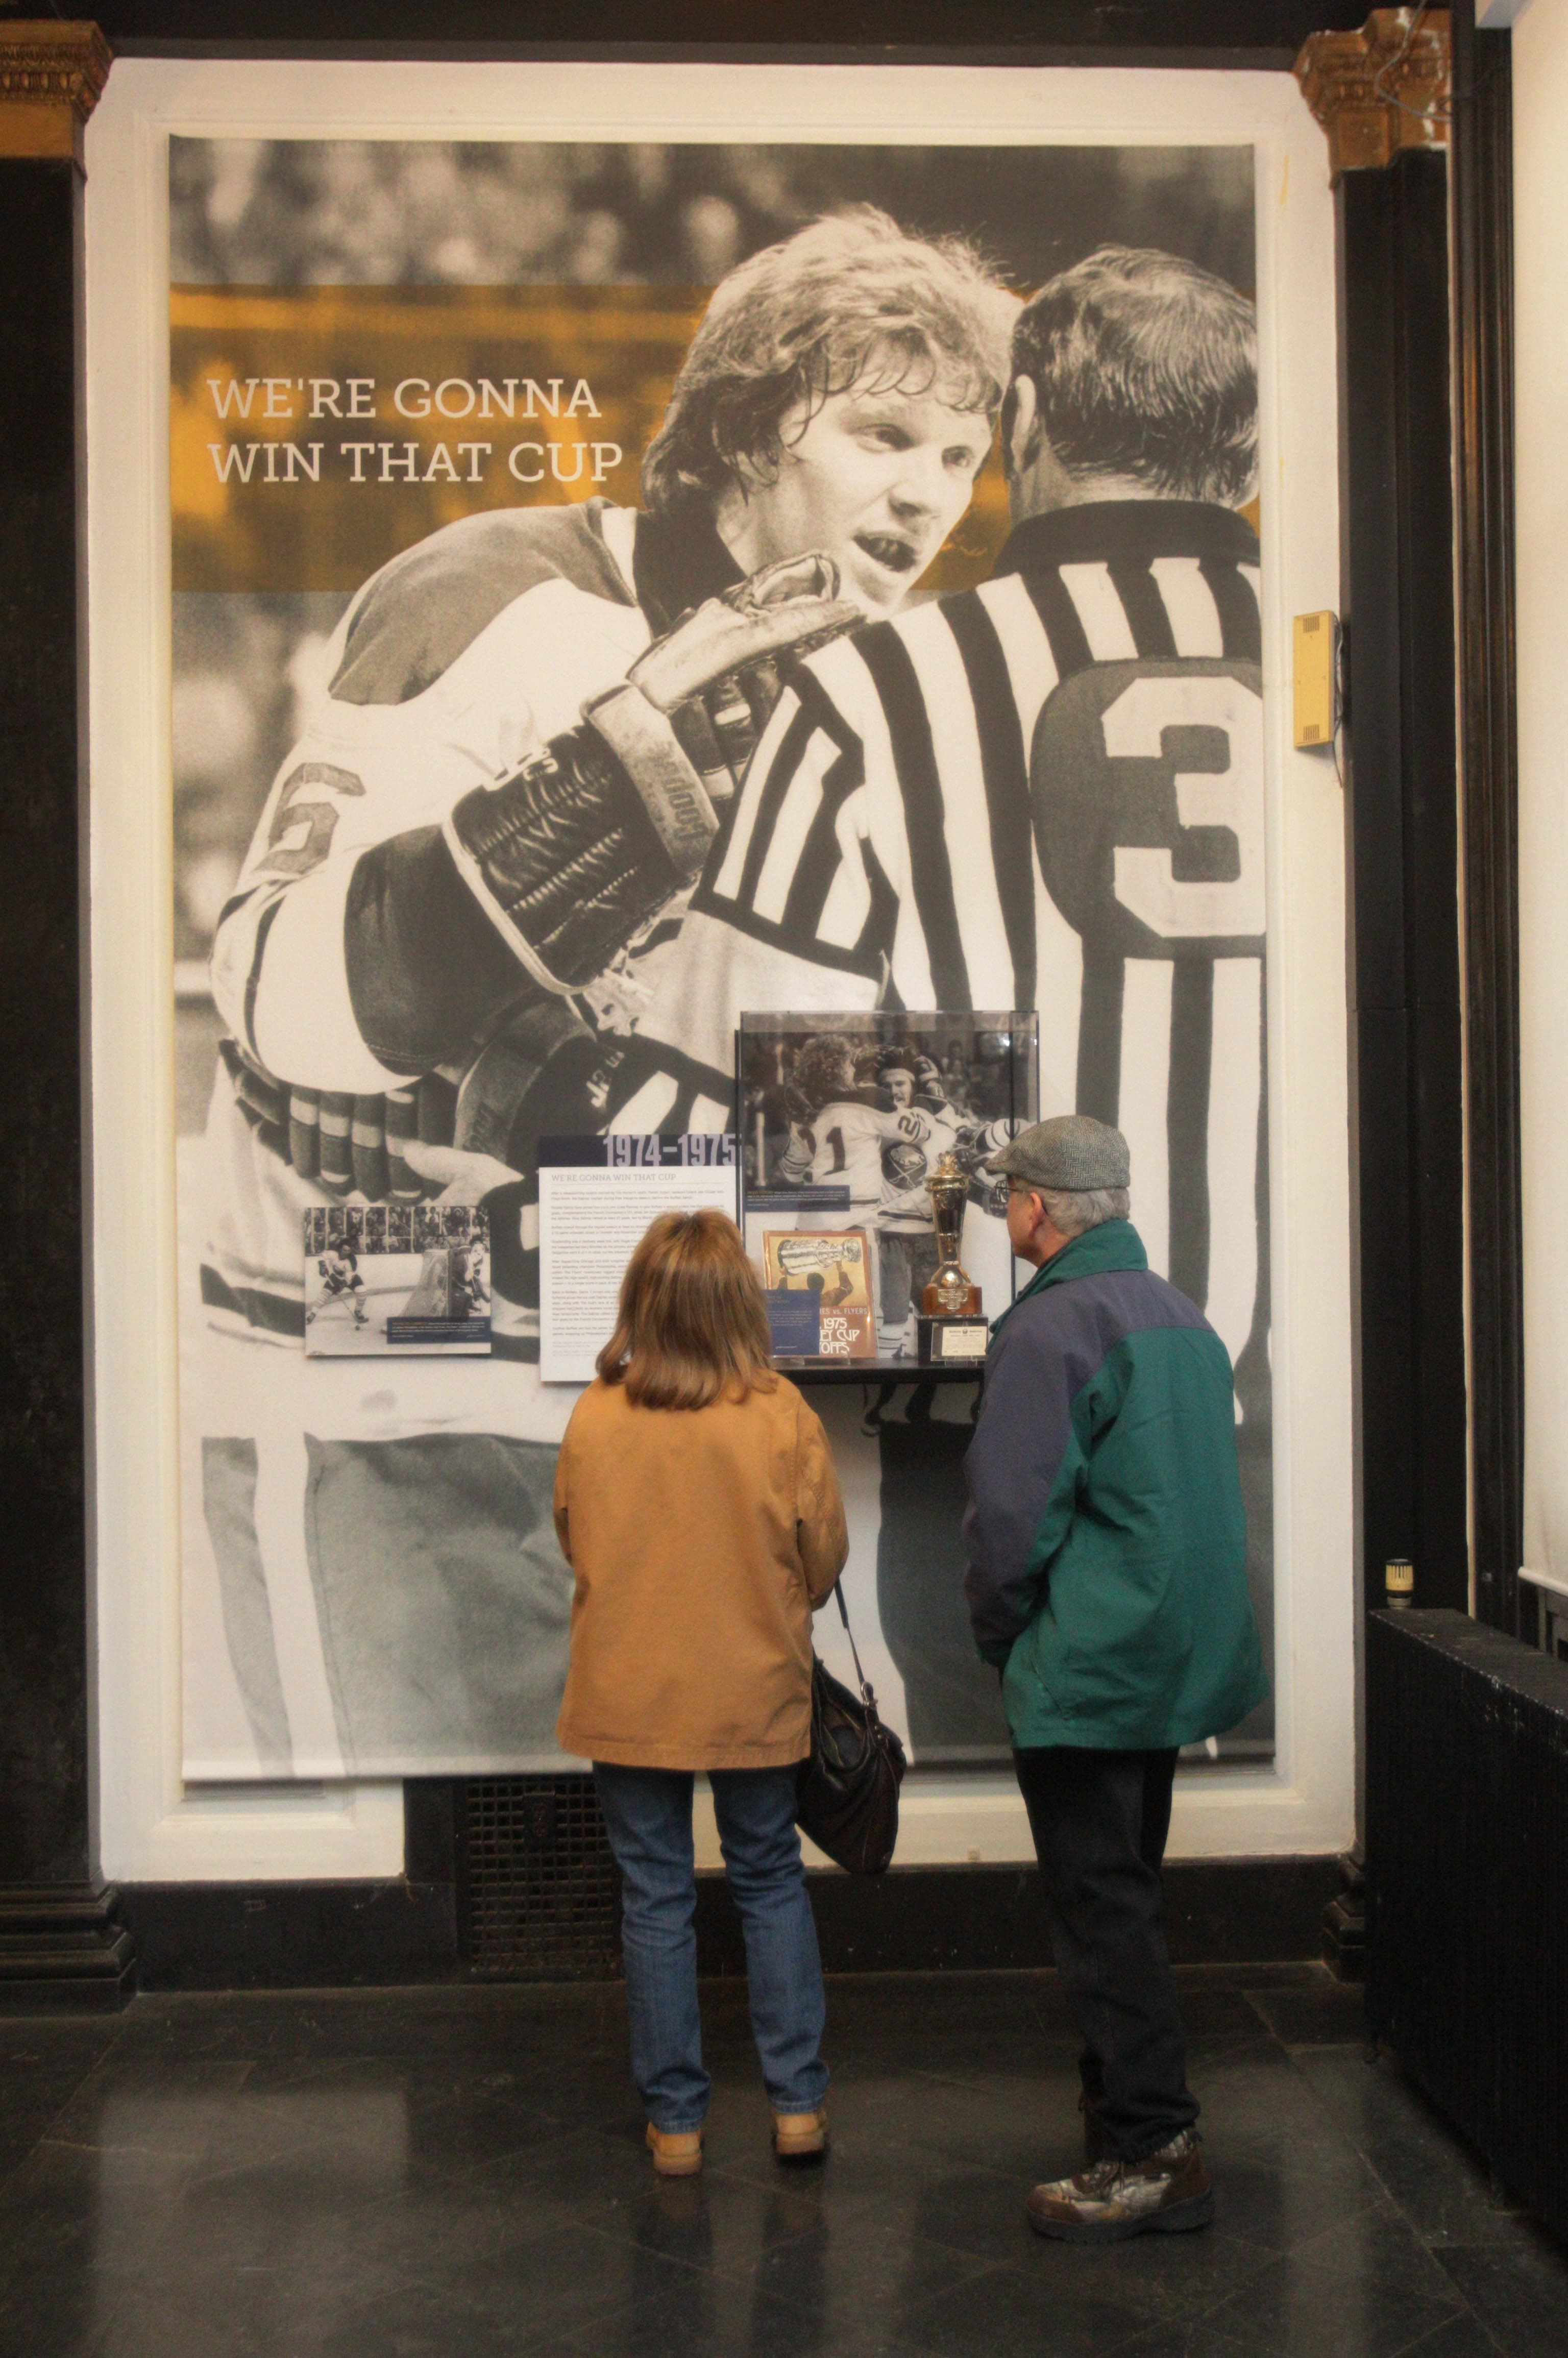 Patty and Edward Fries of East Amherst look at a panel about the Sabres' 1974-75 season when the team went to the Stanley Cup finals.